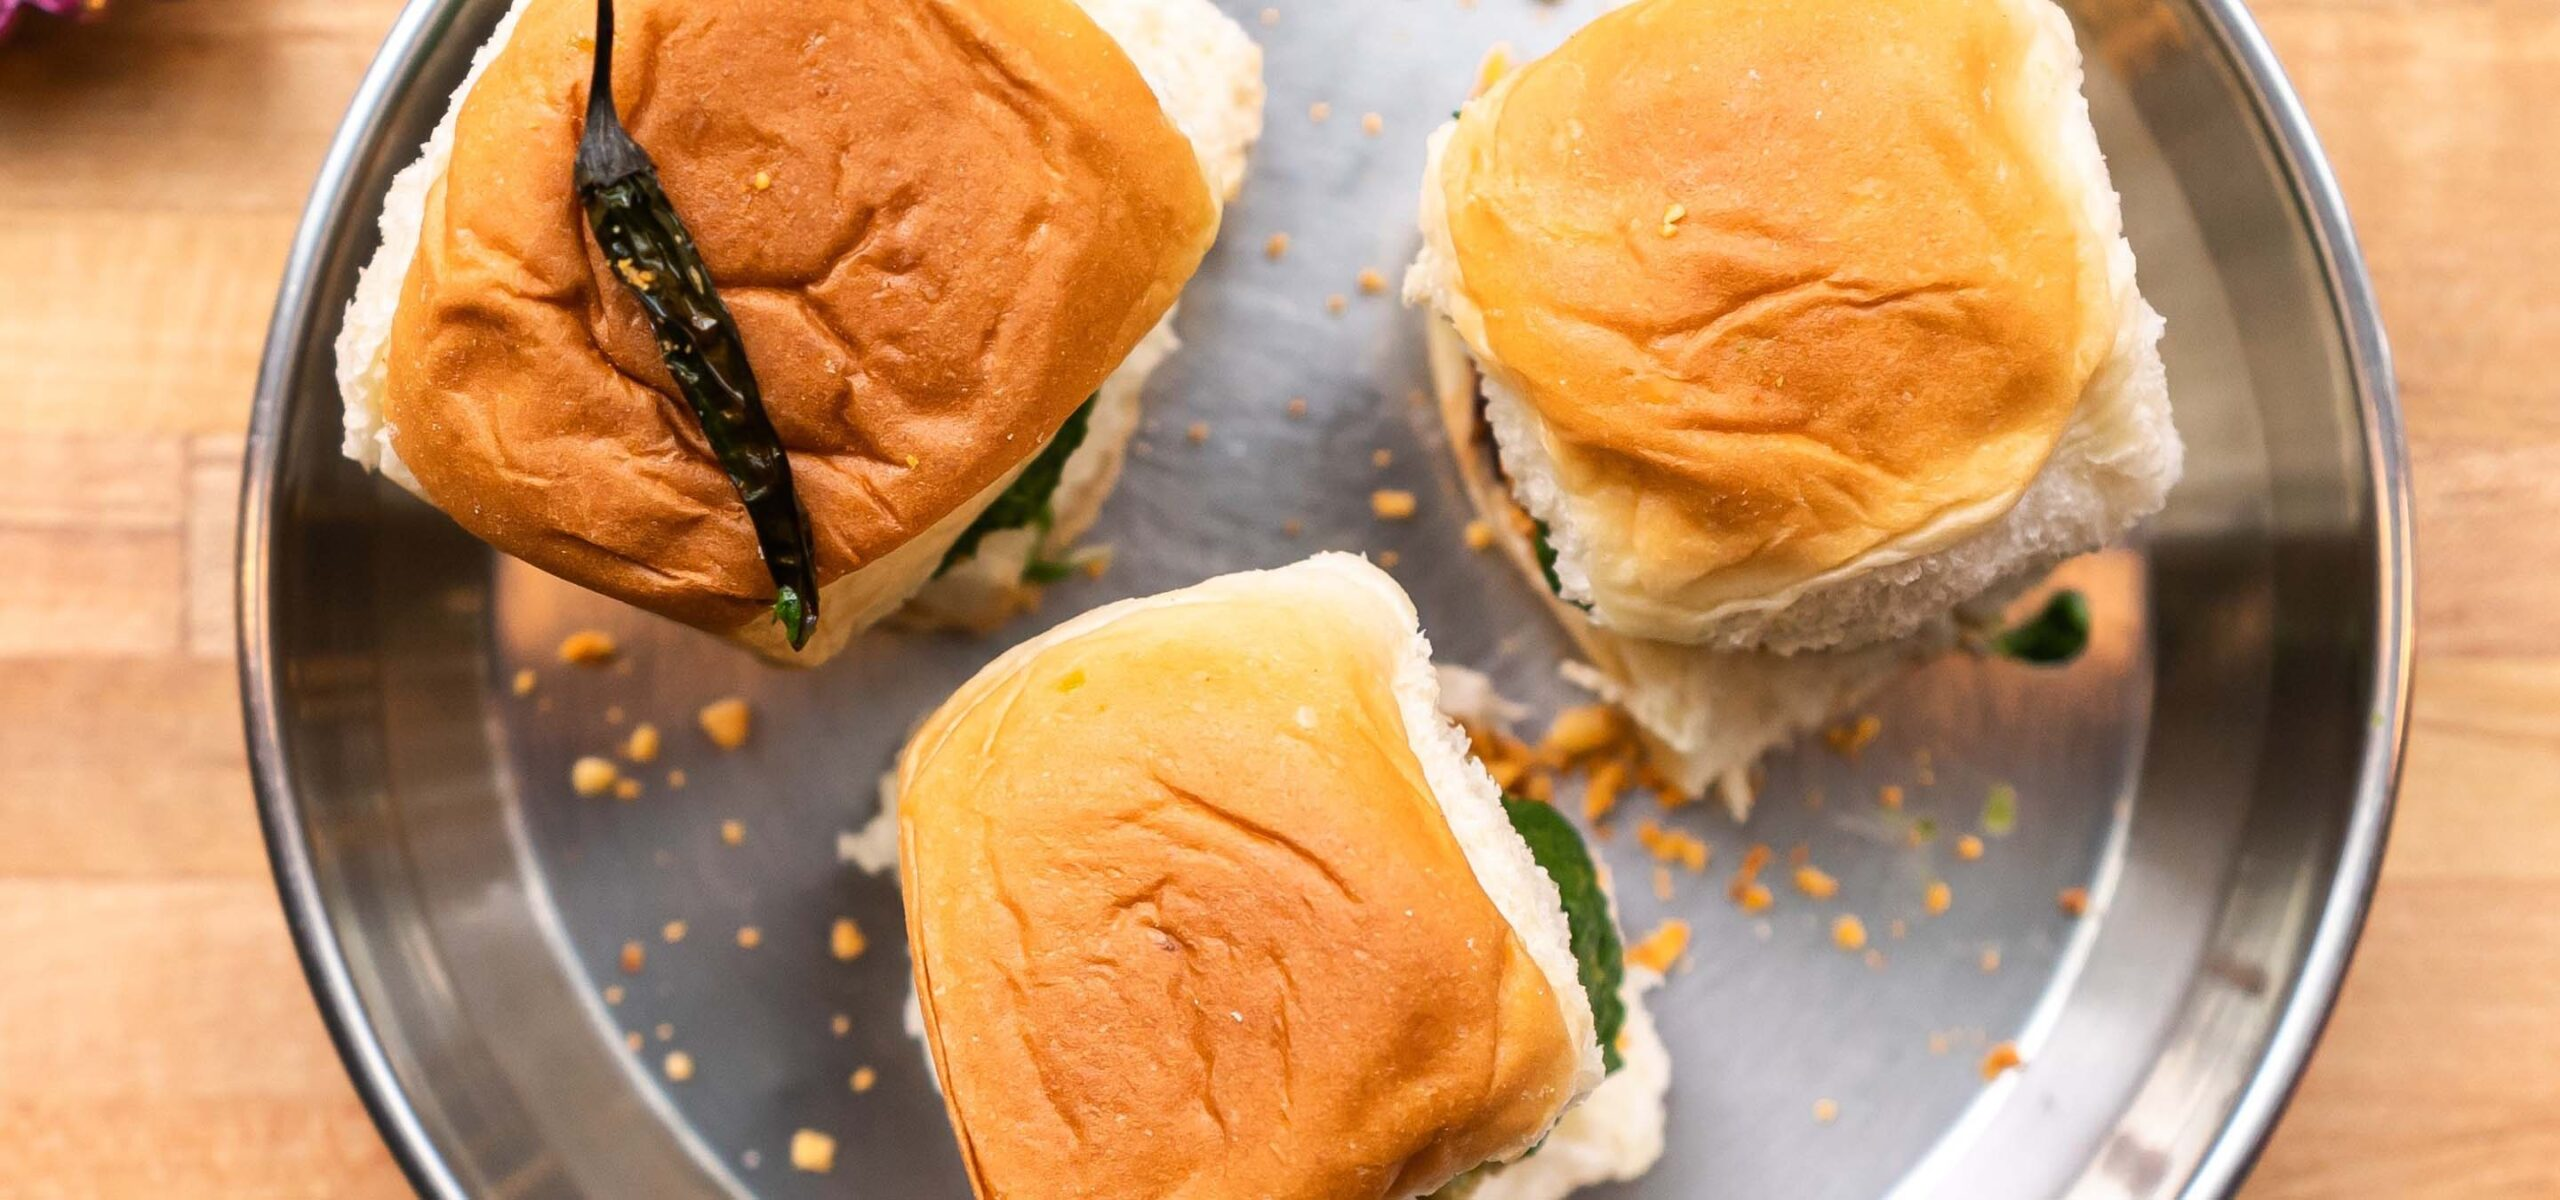 Three Vada Pav sliders on a metal dish; one topped with a roasted green chili pepper.